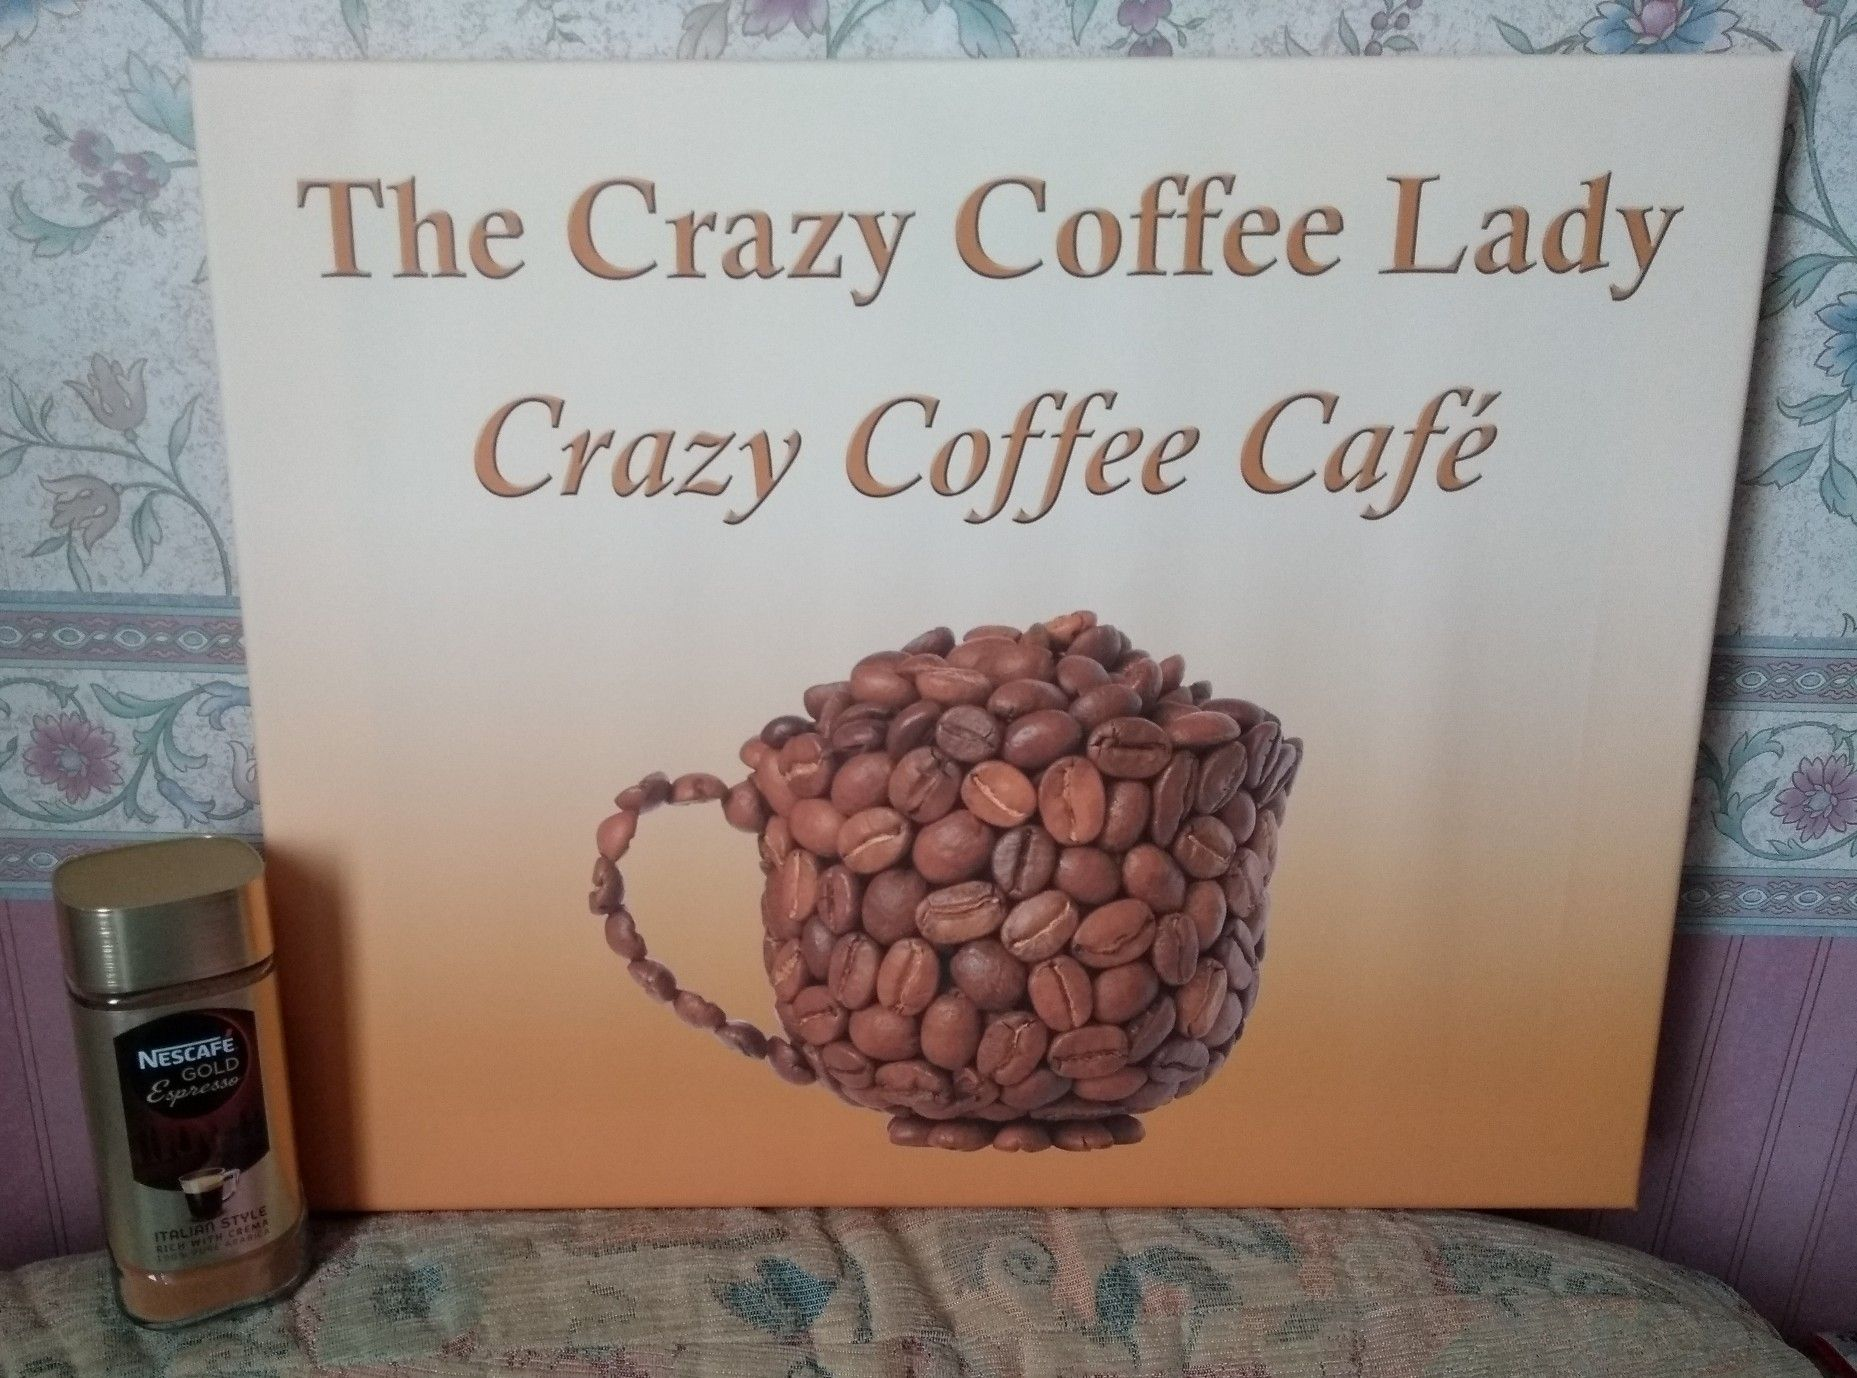 The Crazy Coffee Lady on Ebay! Nescafe gold blend, Crazy